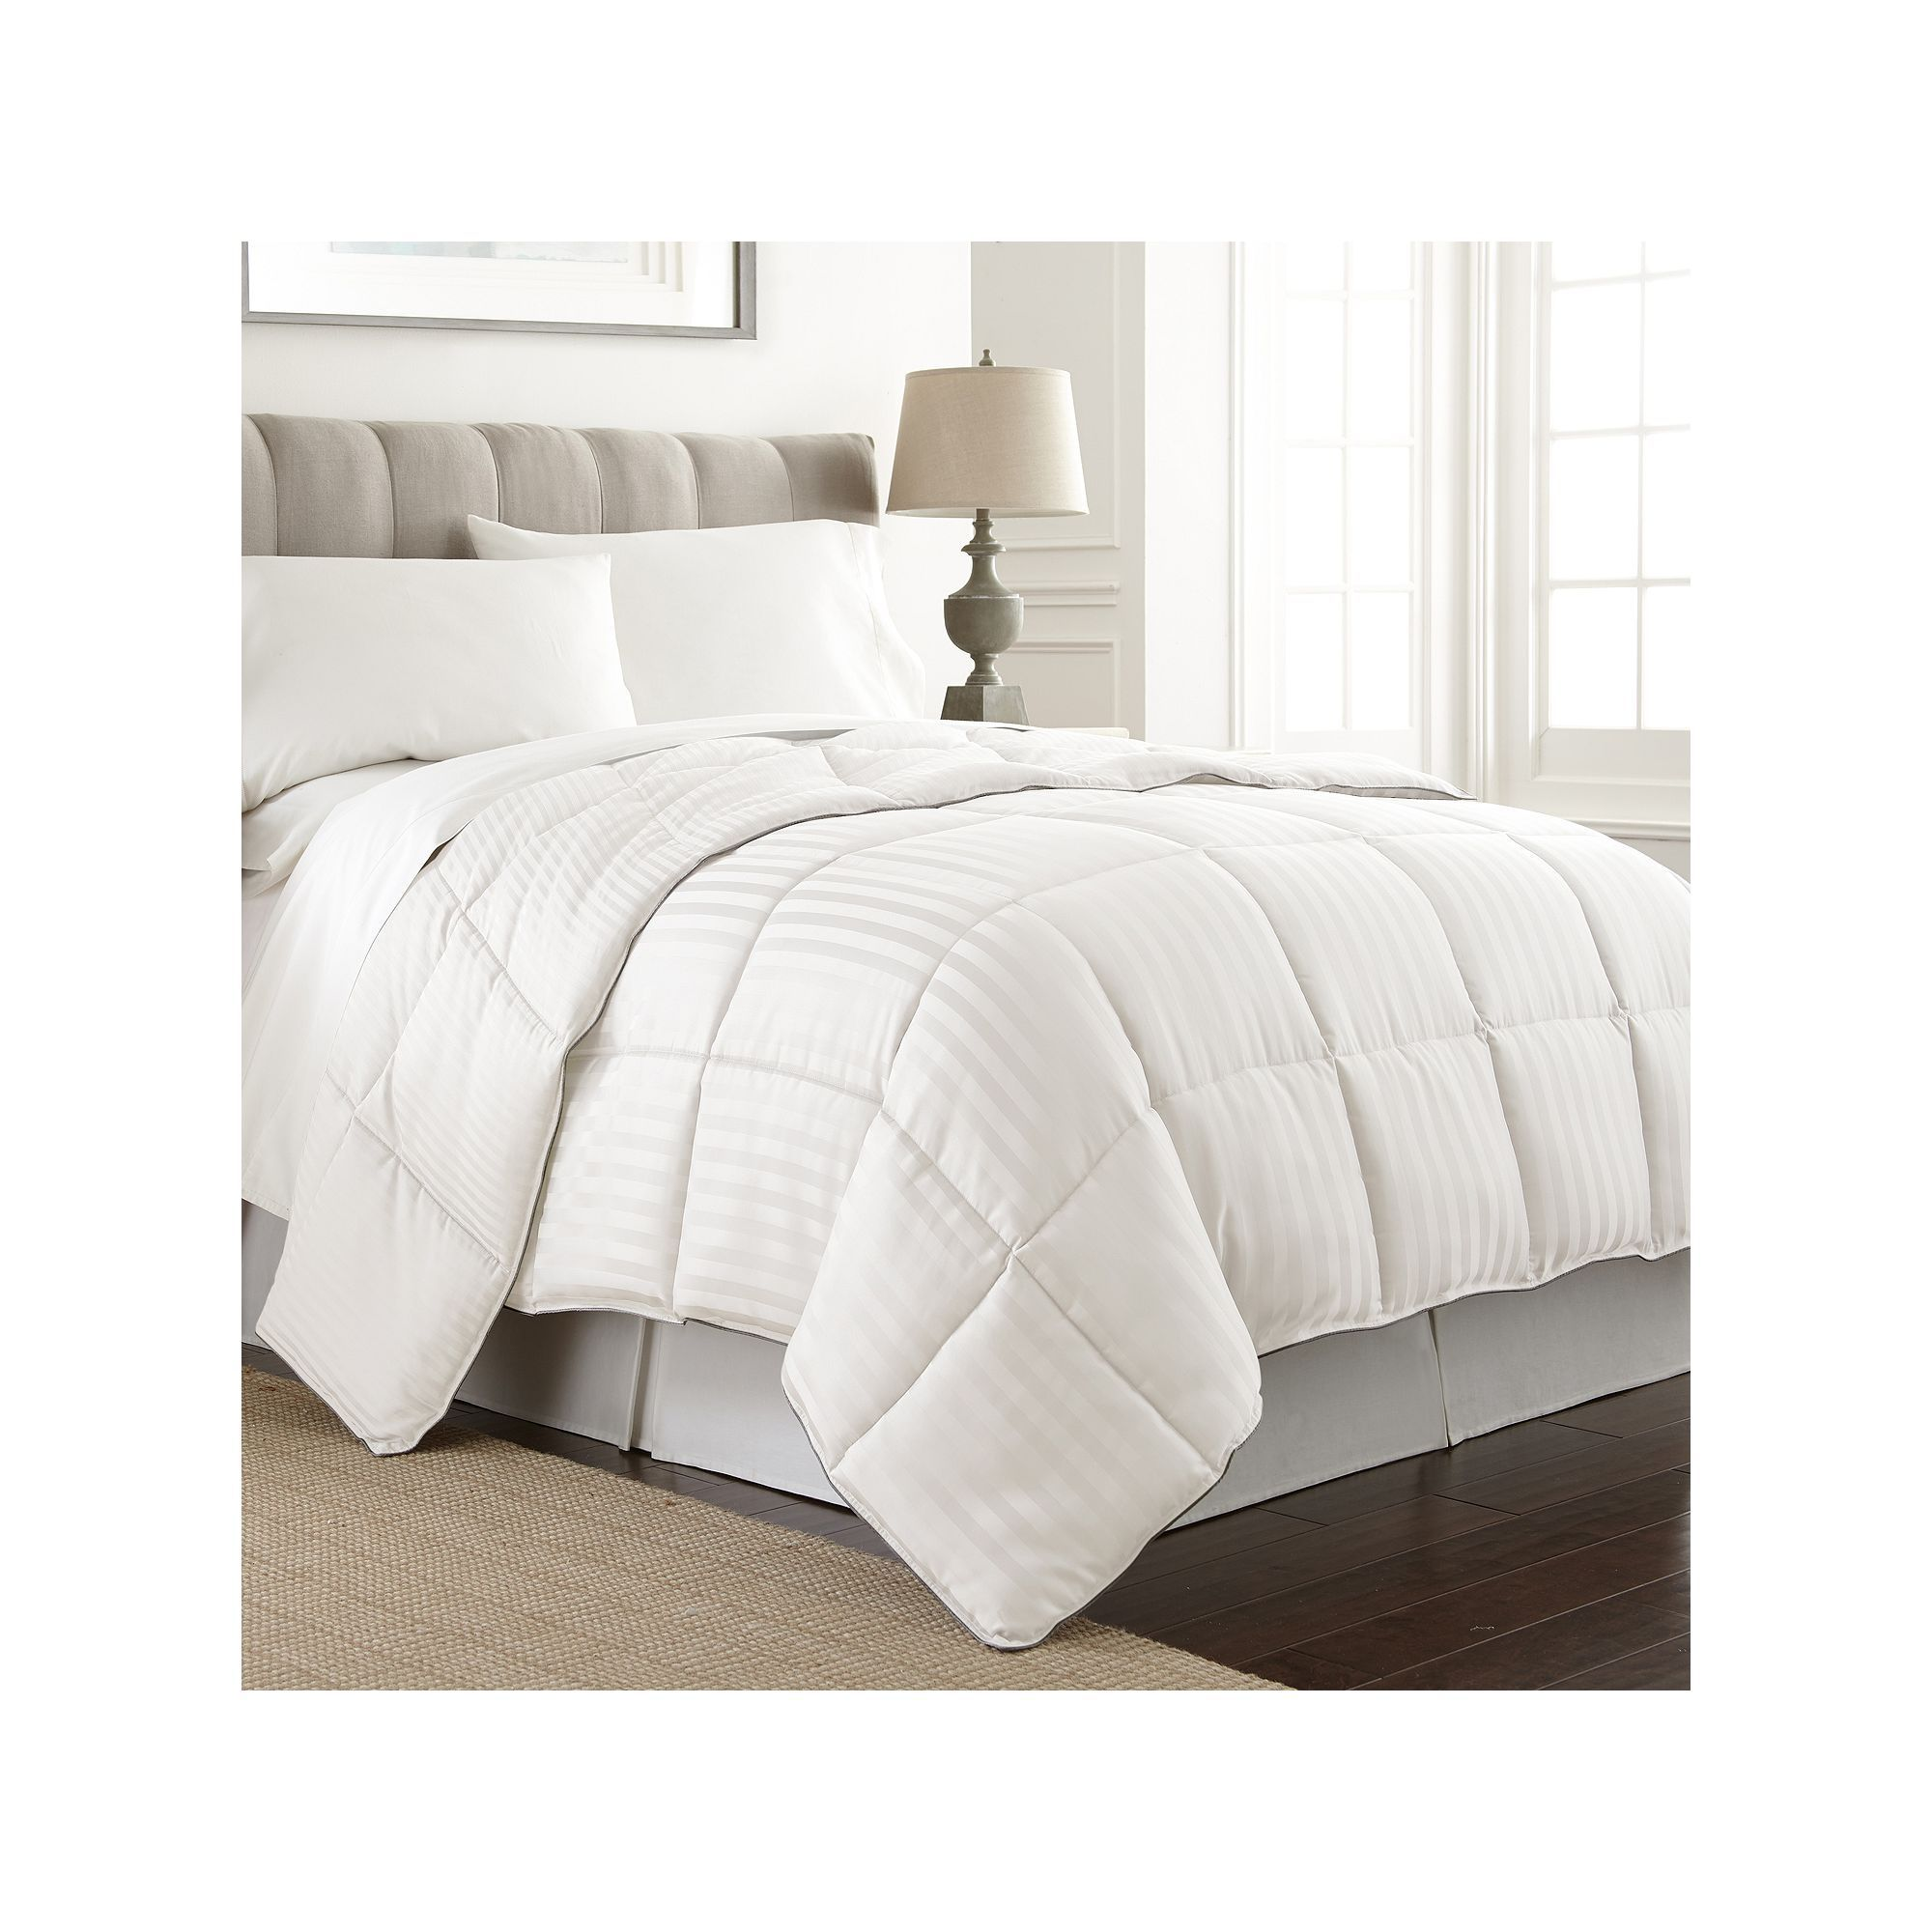 today product home comforter reversible count overstock shipping classics percale bedding madison park luxury cotton down thread alternative westport free bath